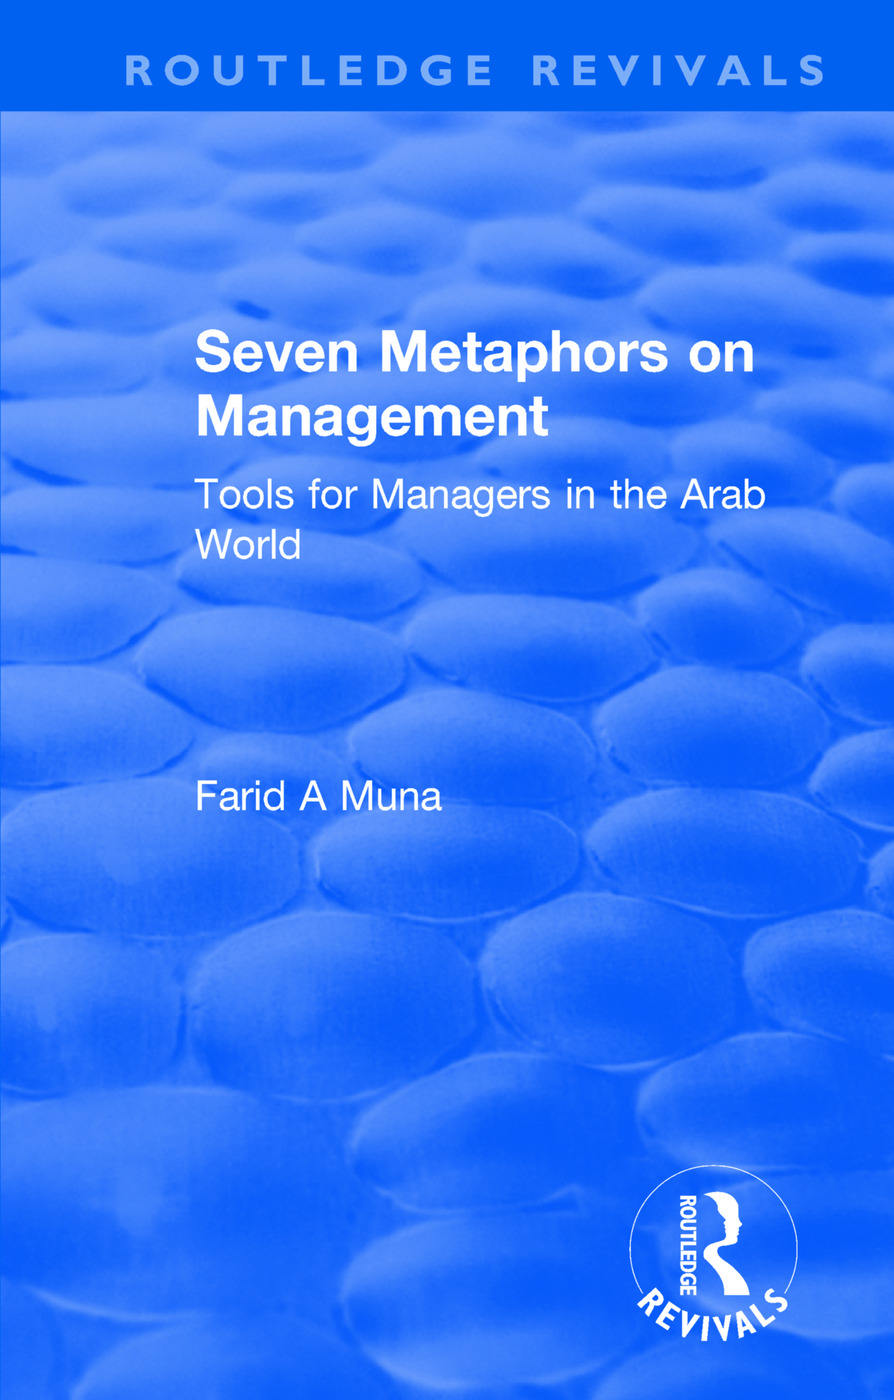 Seven Metaphors on Management: Tools for Managers in the Arab World